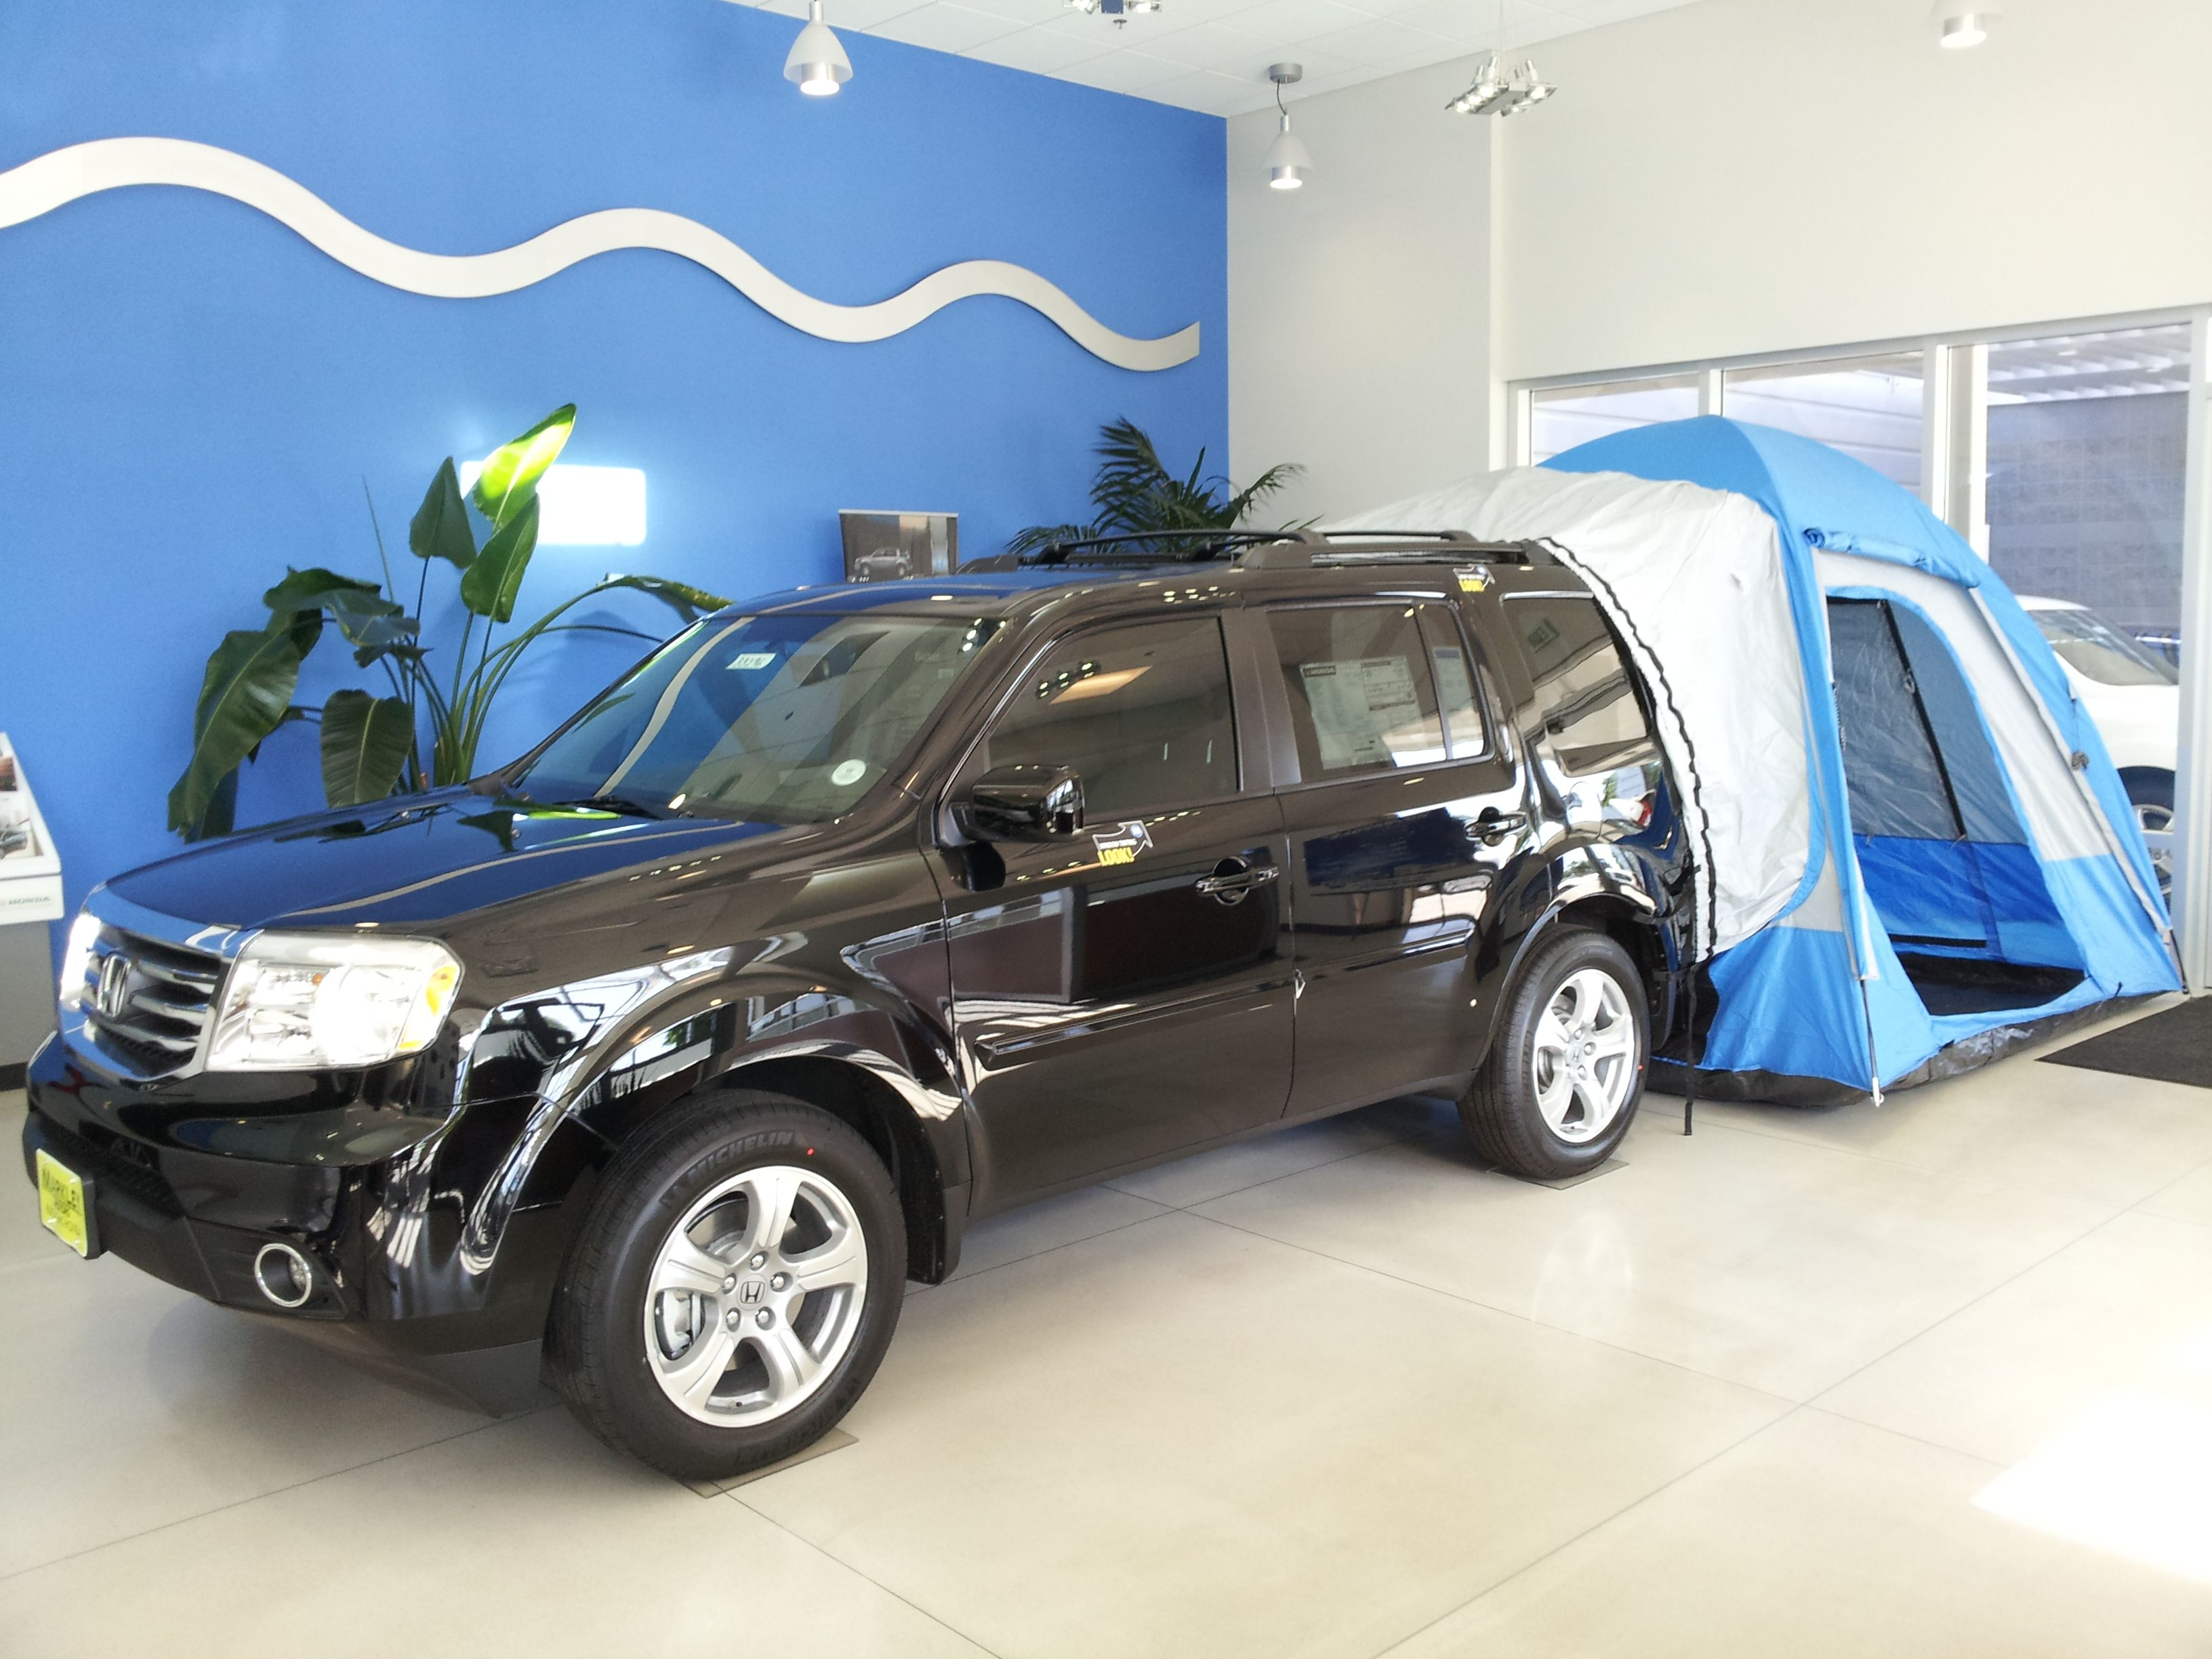 Markley Motors Fort Collins >> Come buy a Pilot, and buy a tent to go camping too ...